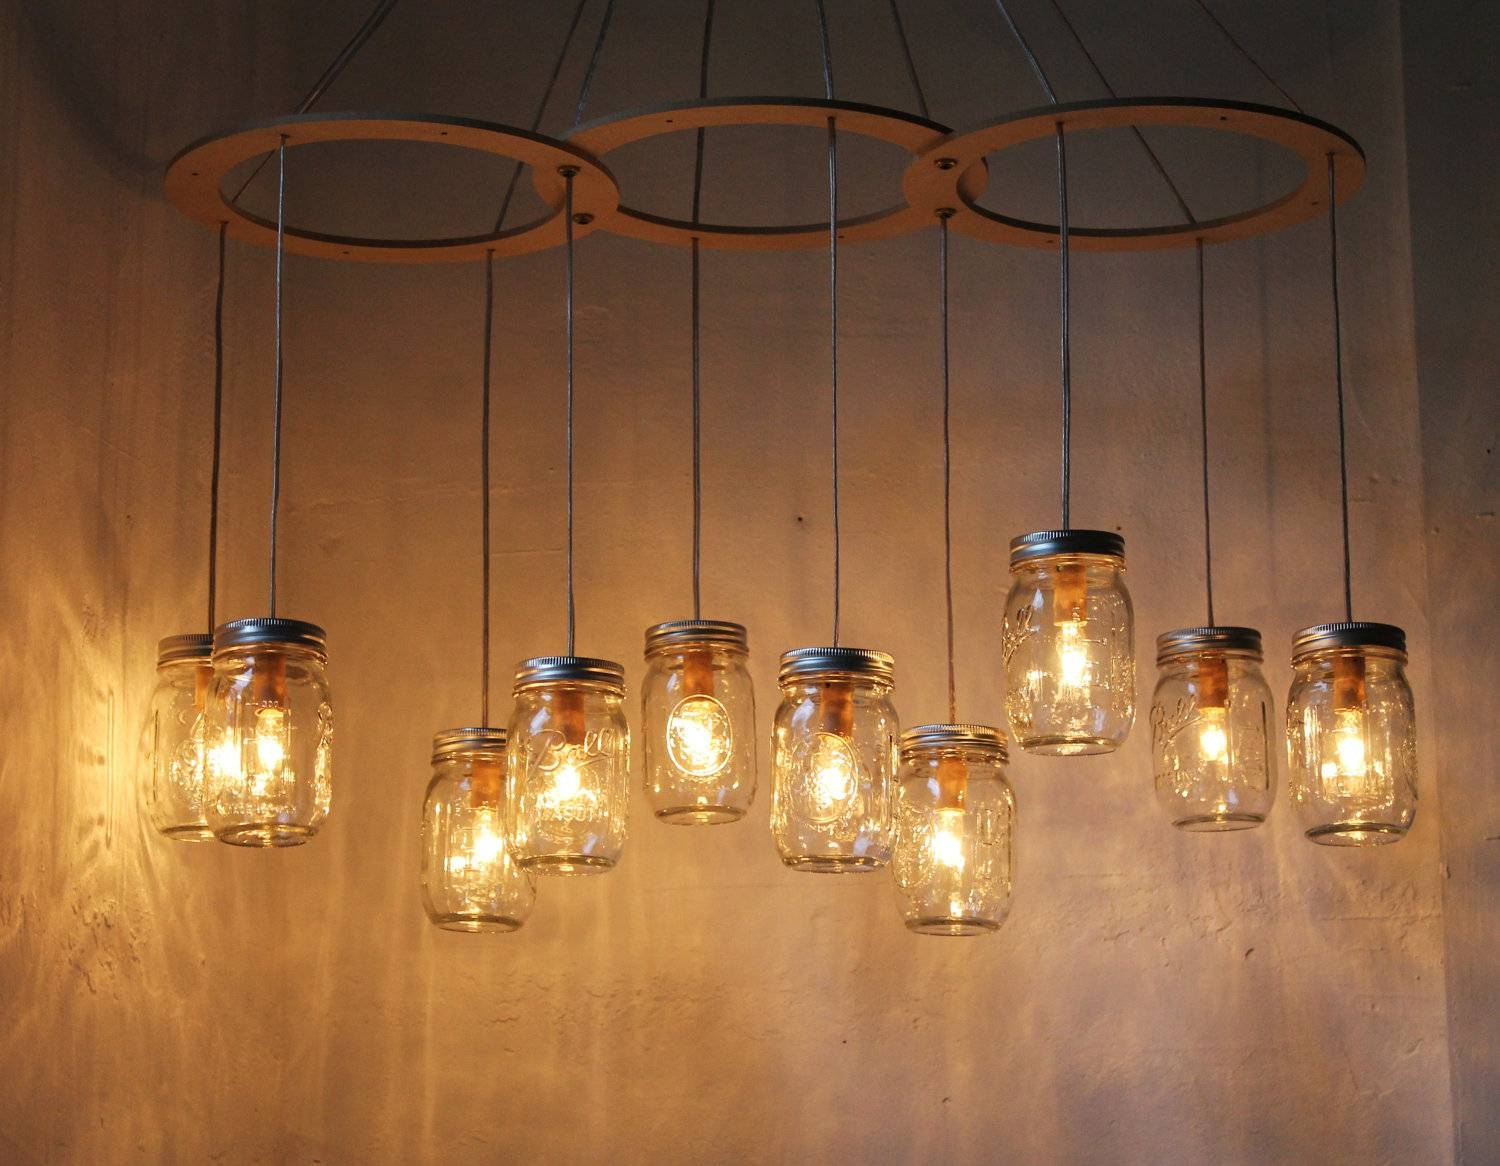 Mason Jar Chandelier Lighting Fixture Large Rustic Mason Jar intended for Hanging Lights Fixtures (Image 9 of 15)